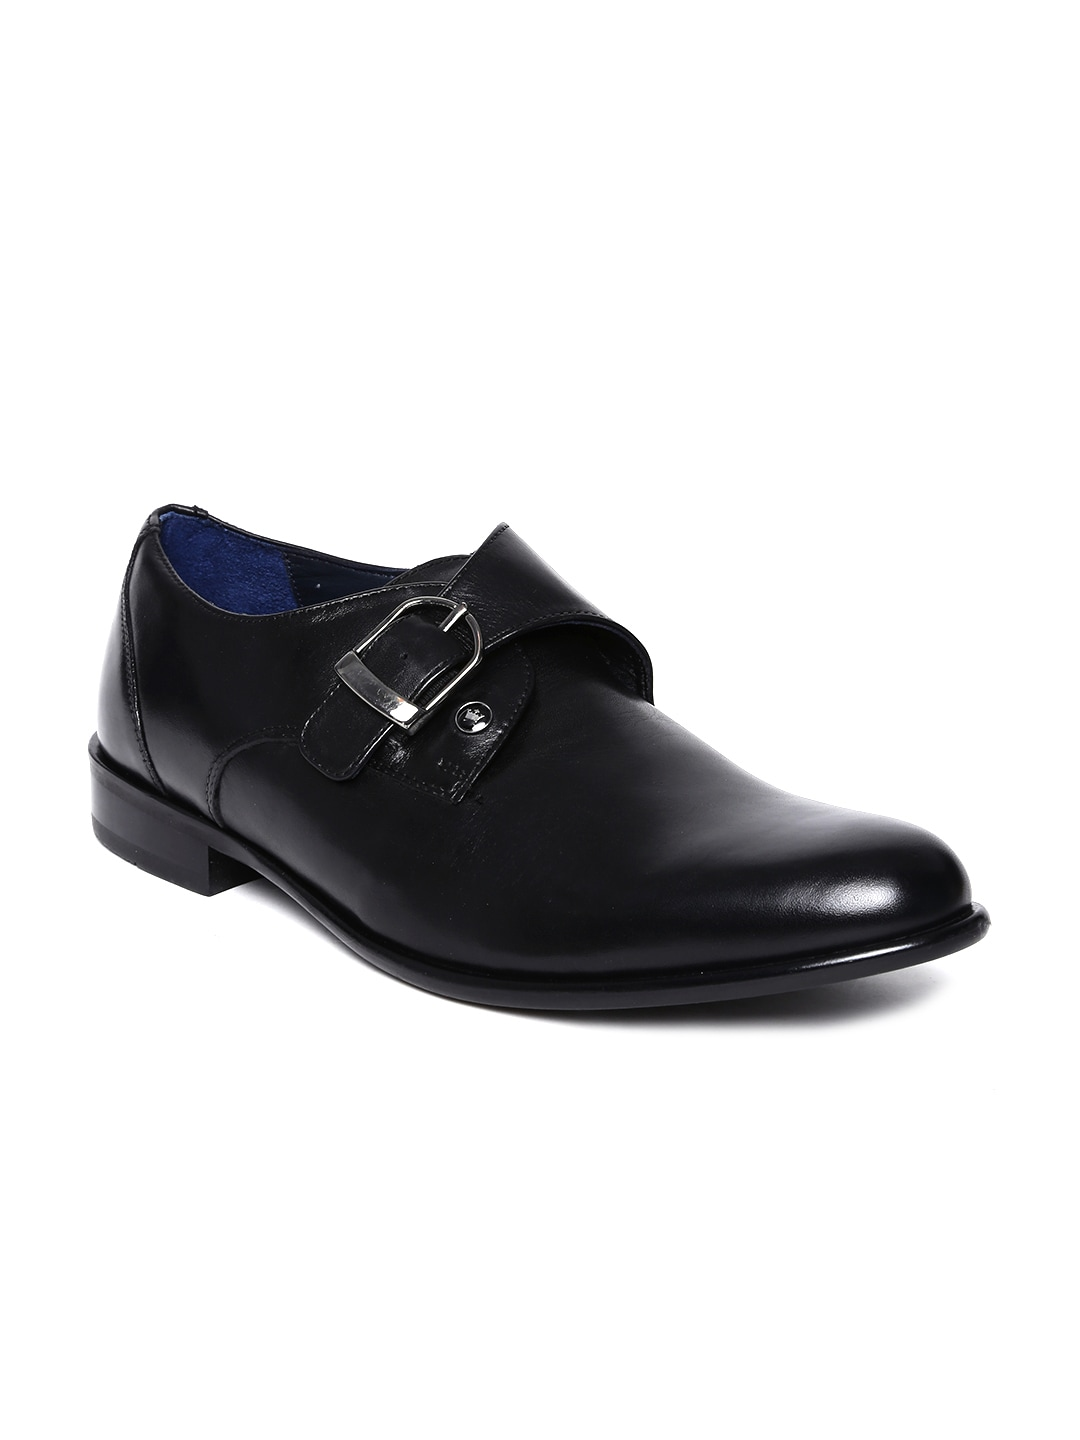 Louis Philippe Men Black Crust Leather Formal Shoes